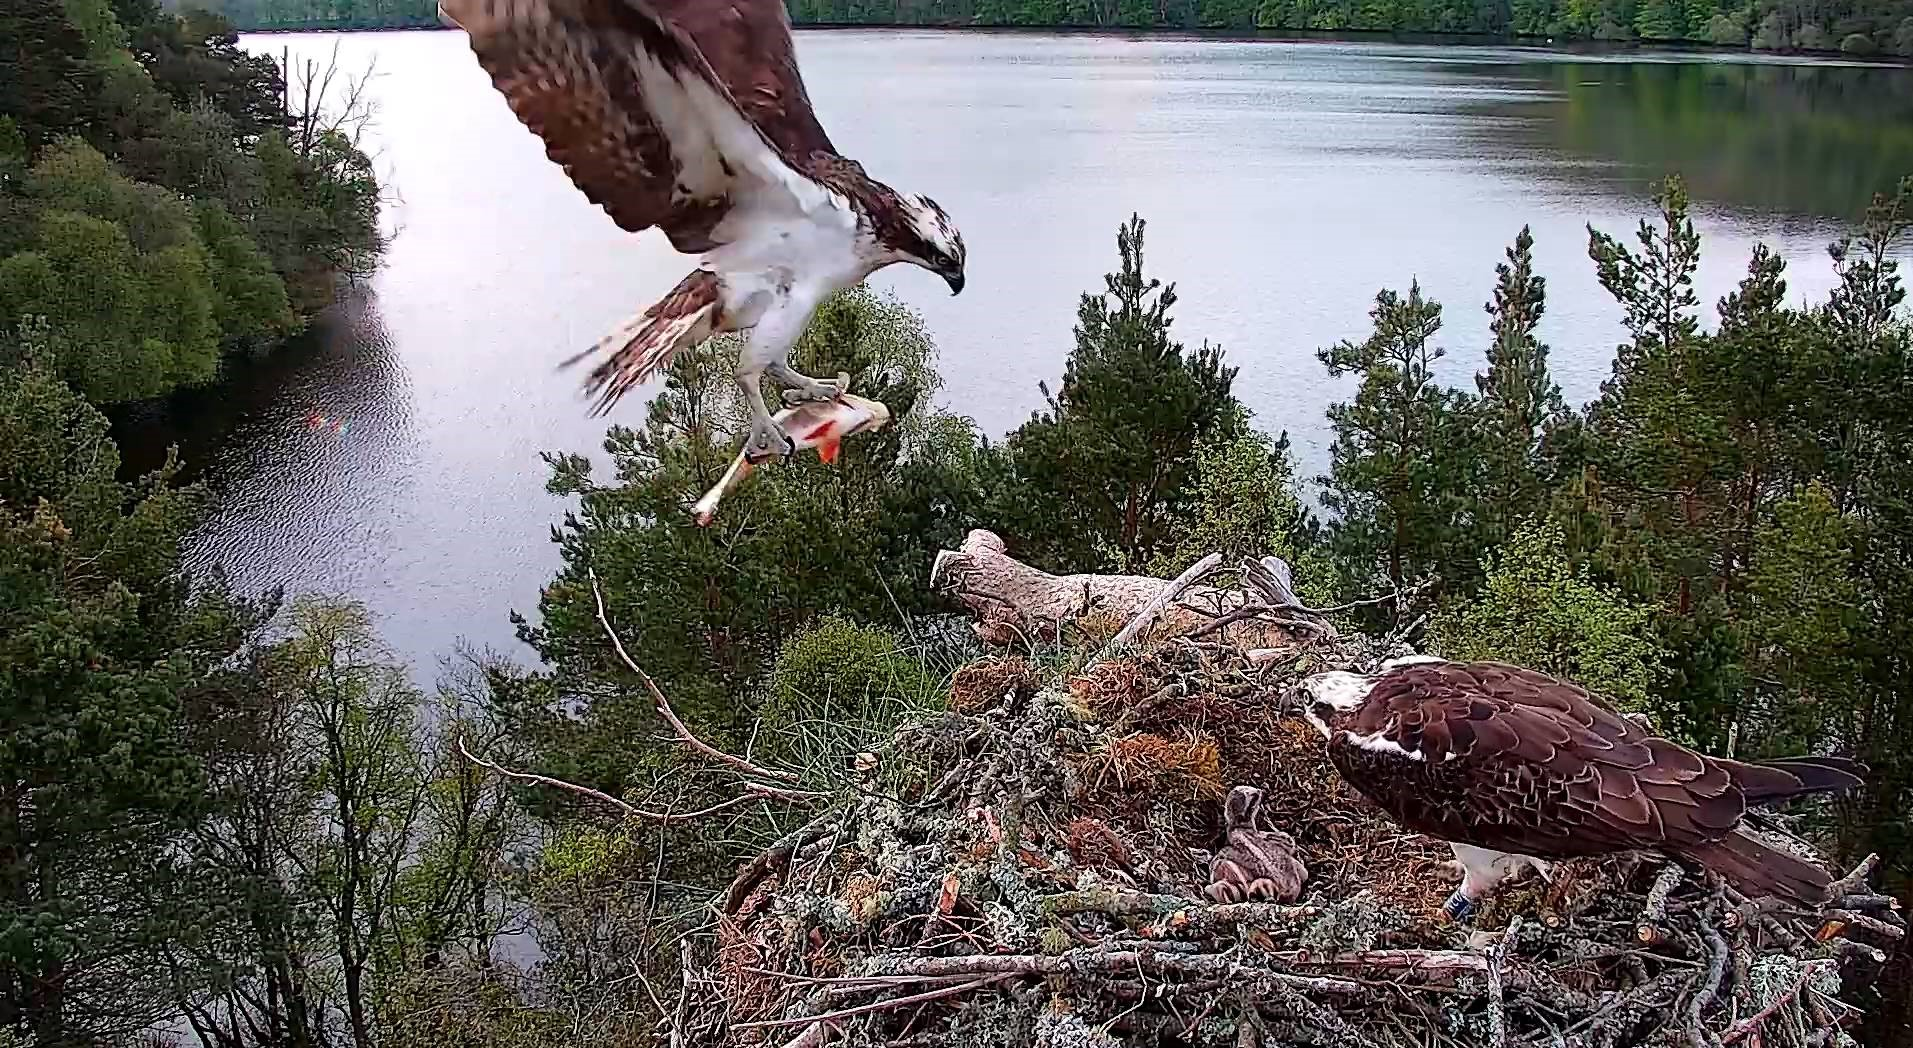 'Flying fishermen': the key features that help ospreys hunt